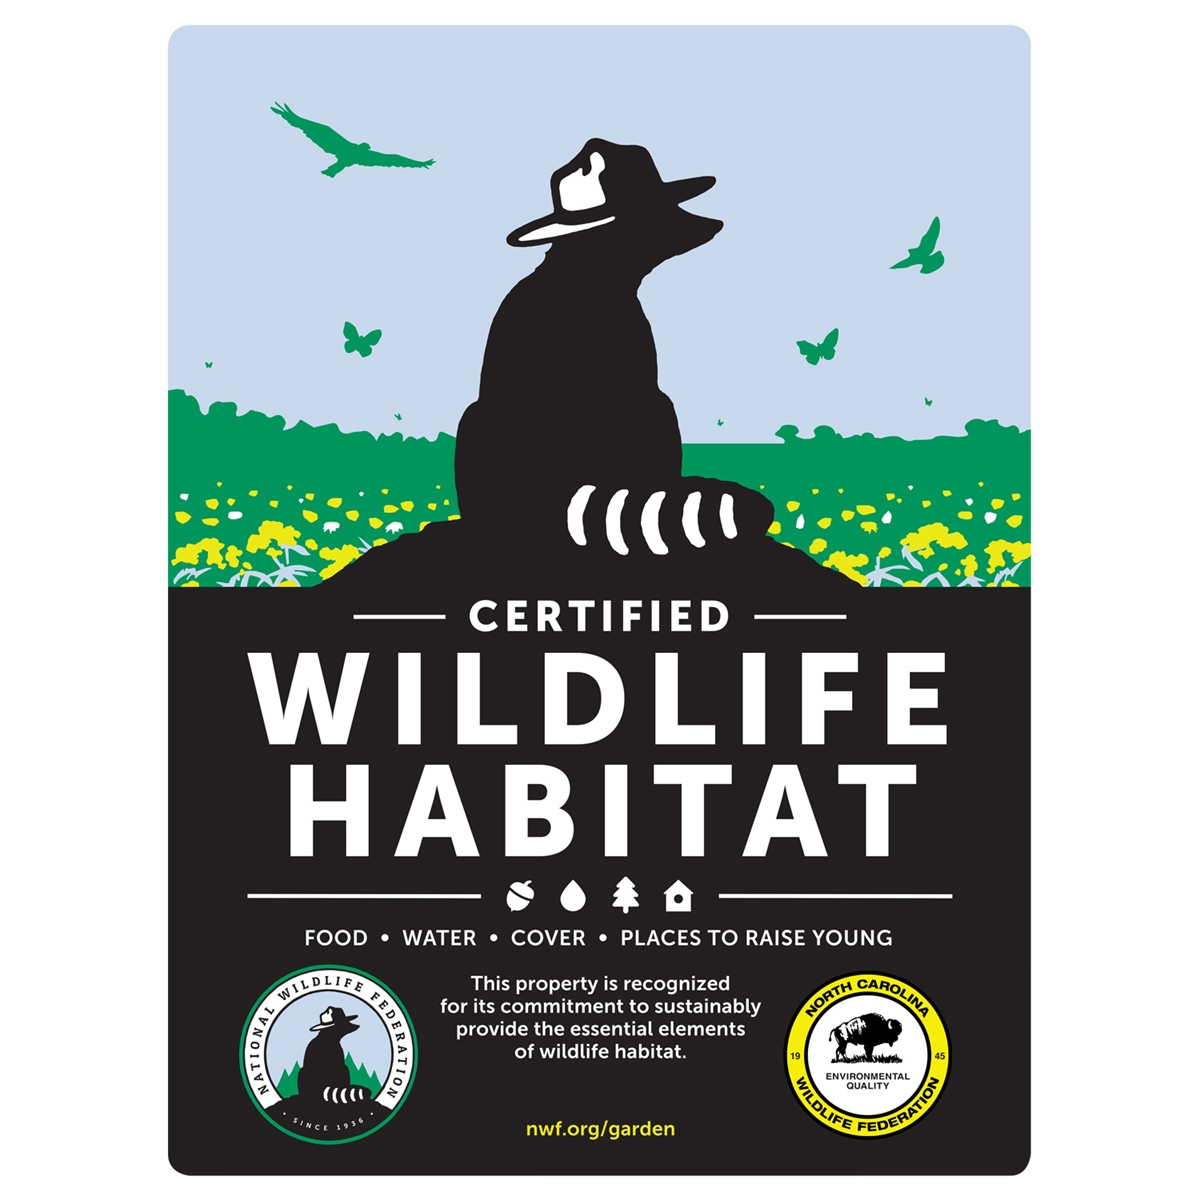 North Carolina Wildlife Federation Certified Wildlife Habitat Sign